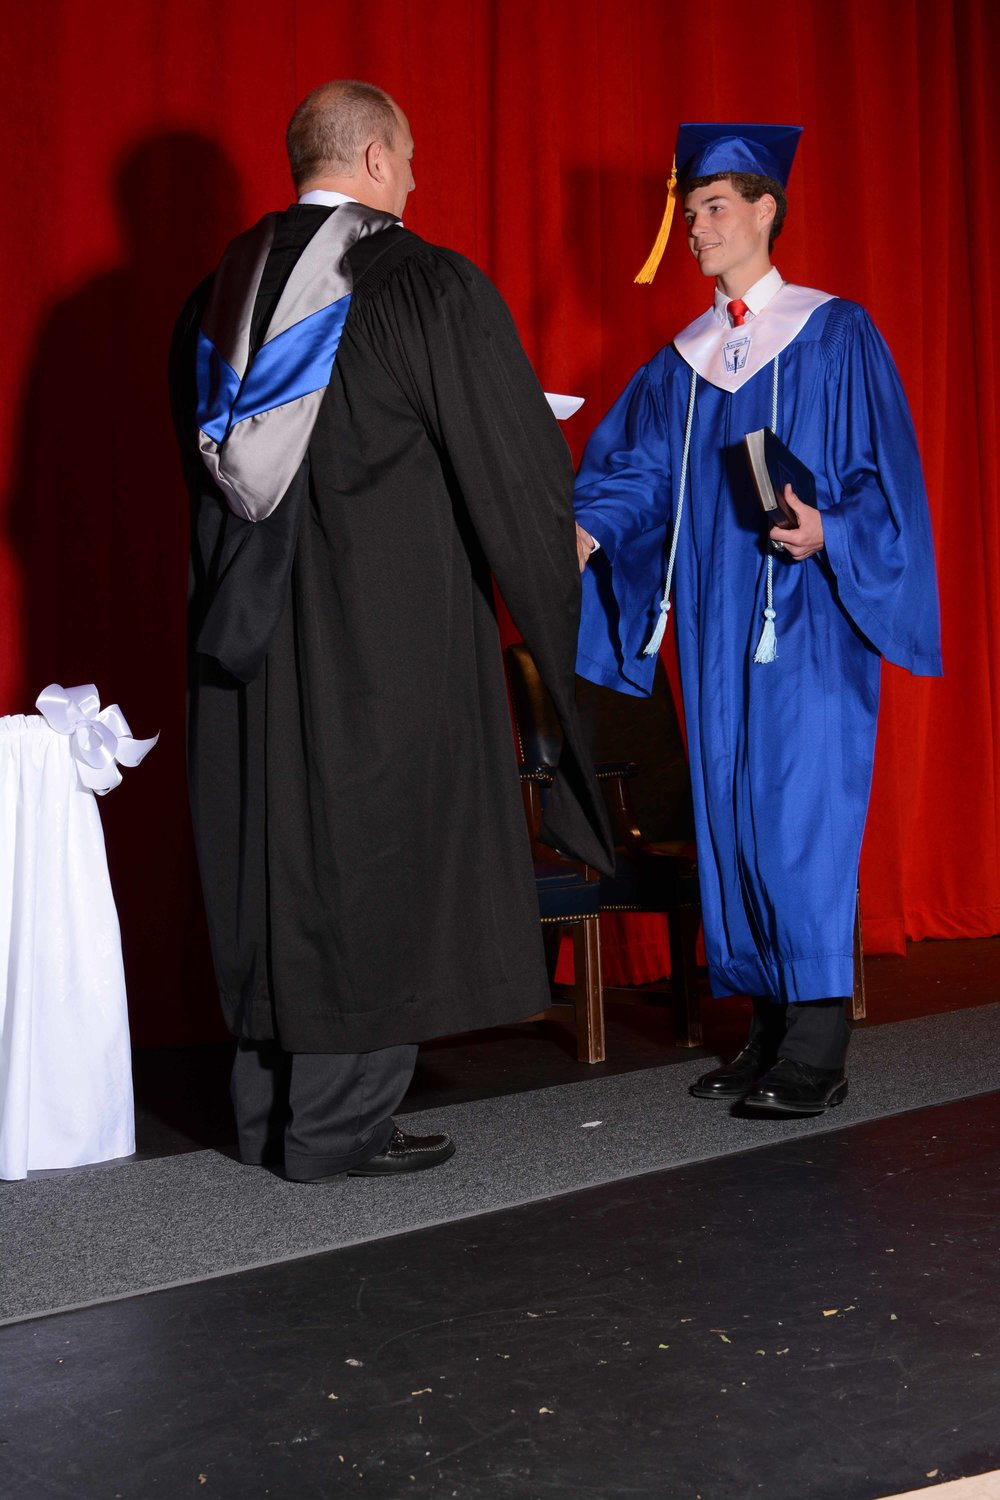 May15 HardingGraduation159.jpg